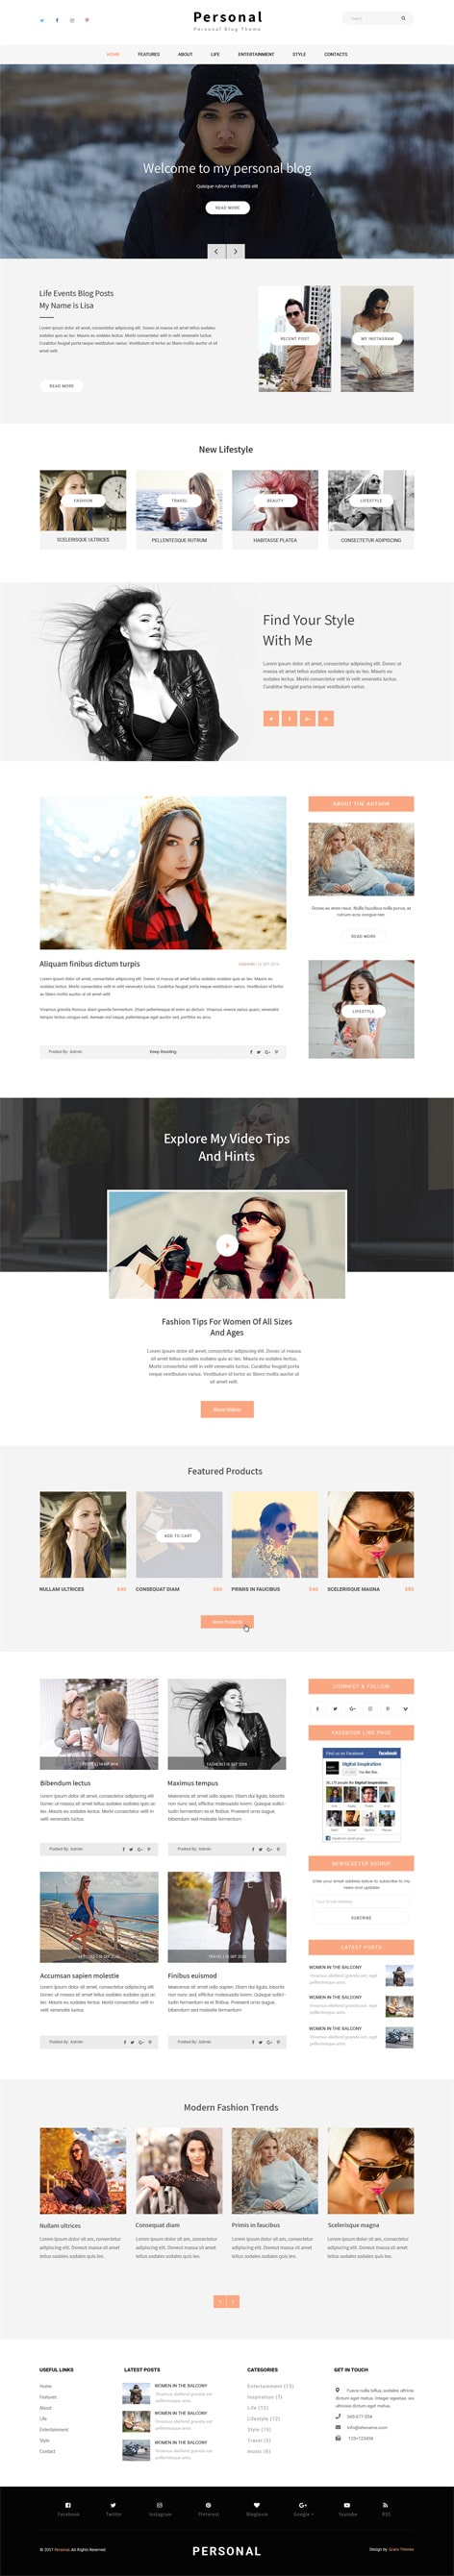 WordPress Website Templates and Themes by GraceThemes